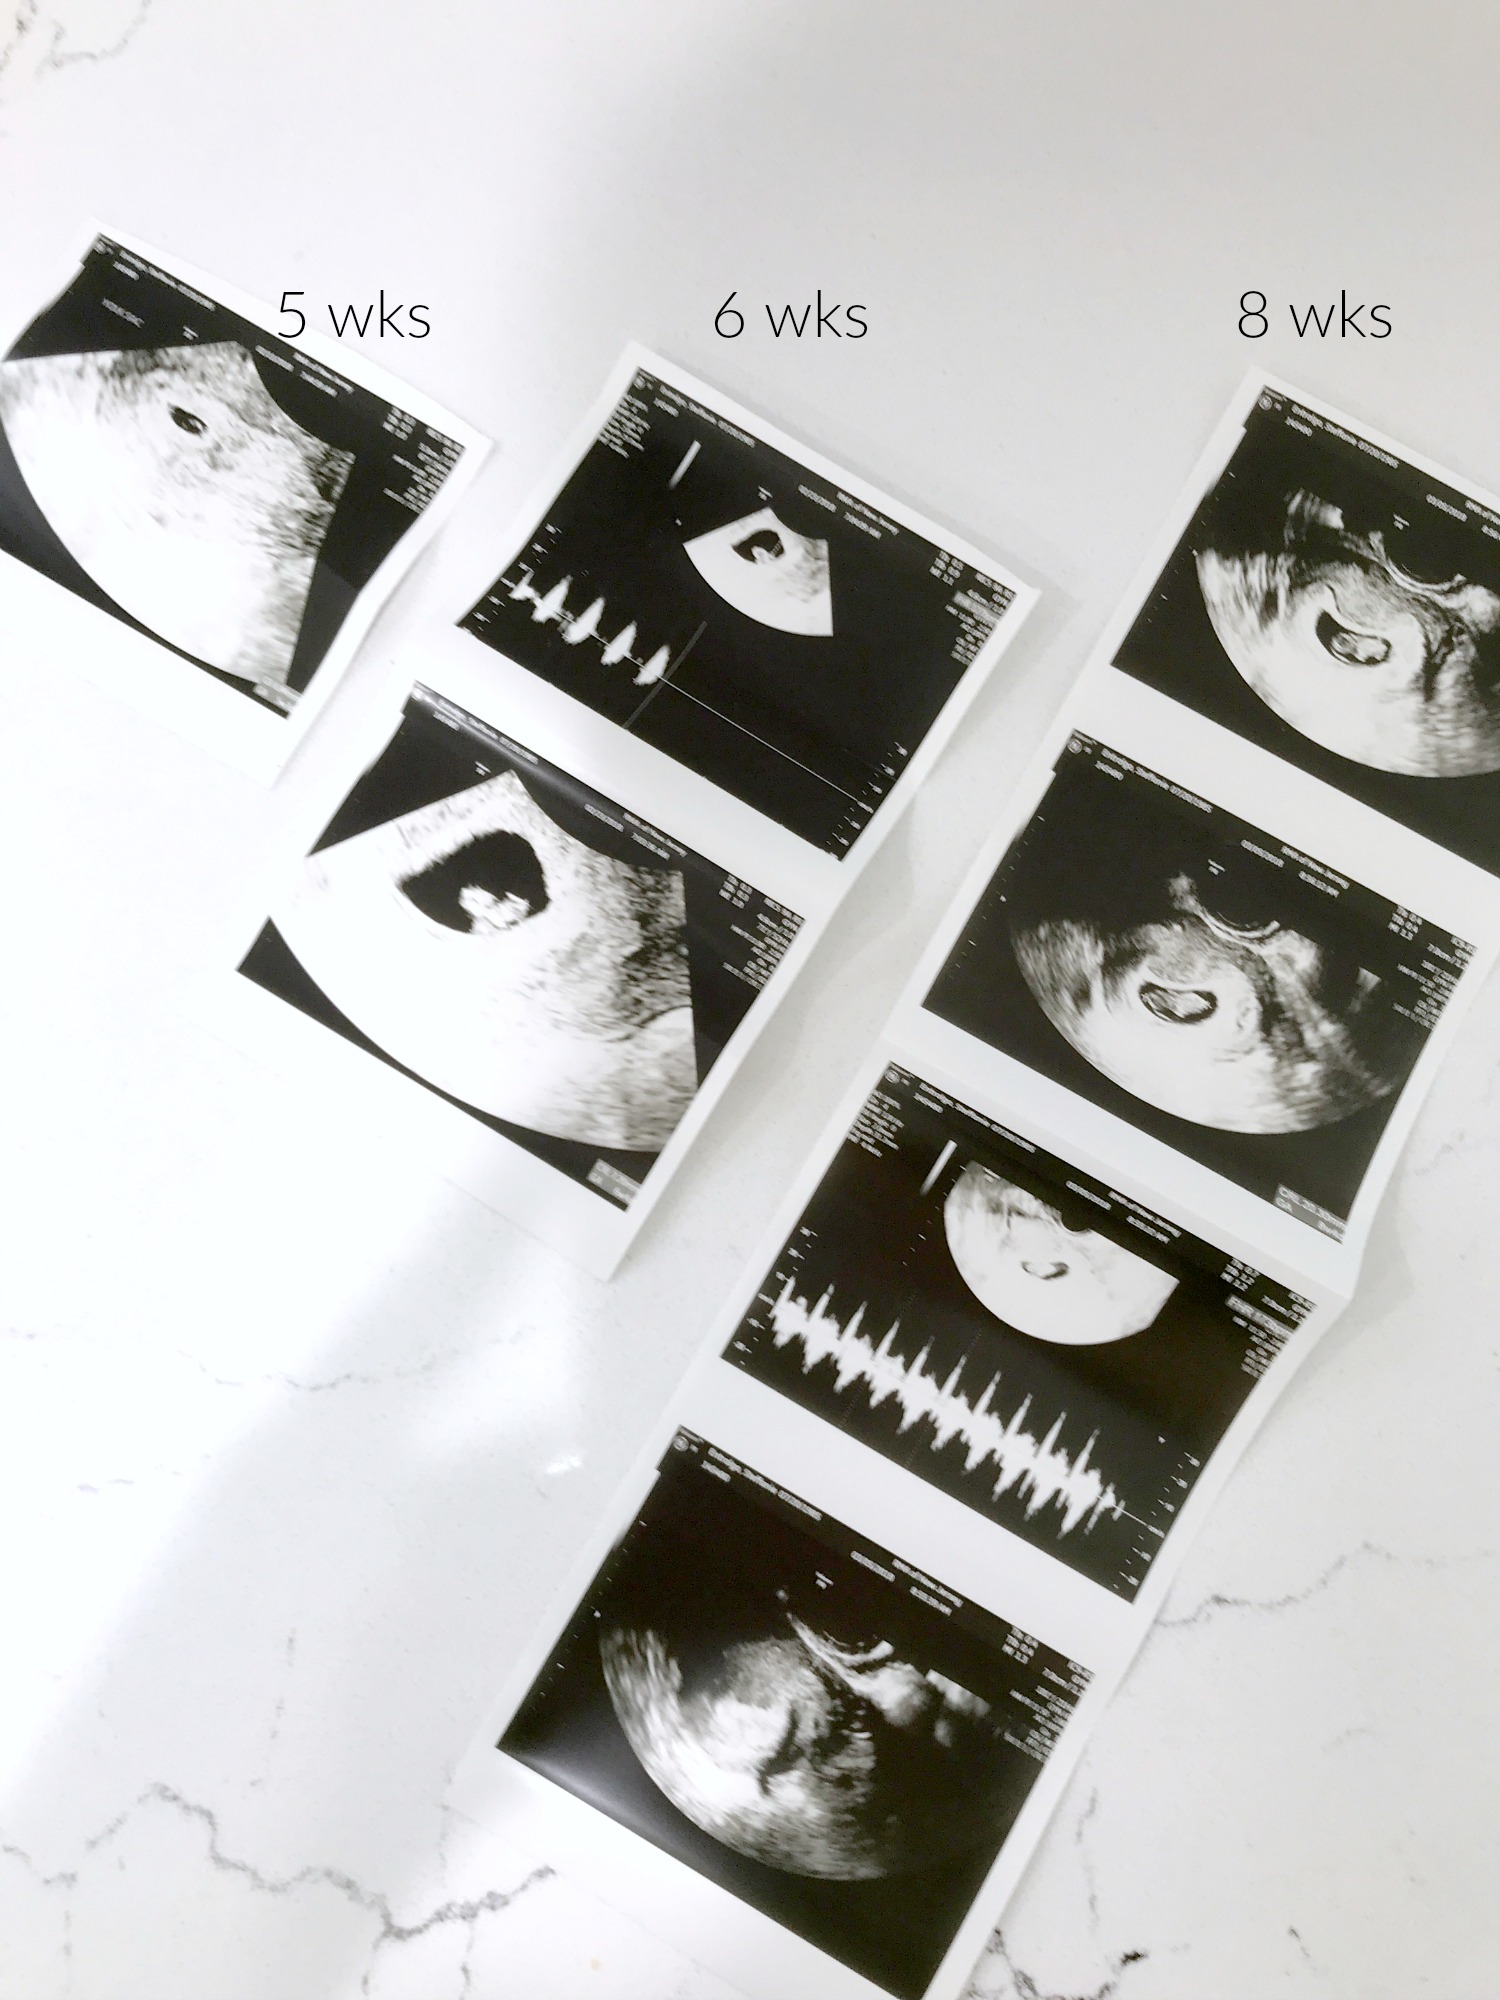 Our IVF Pregnancy Story | Ultrasounds Week 5 Week 6 Week 8